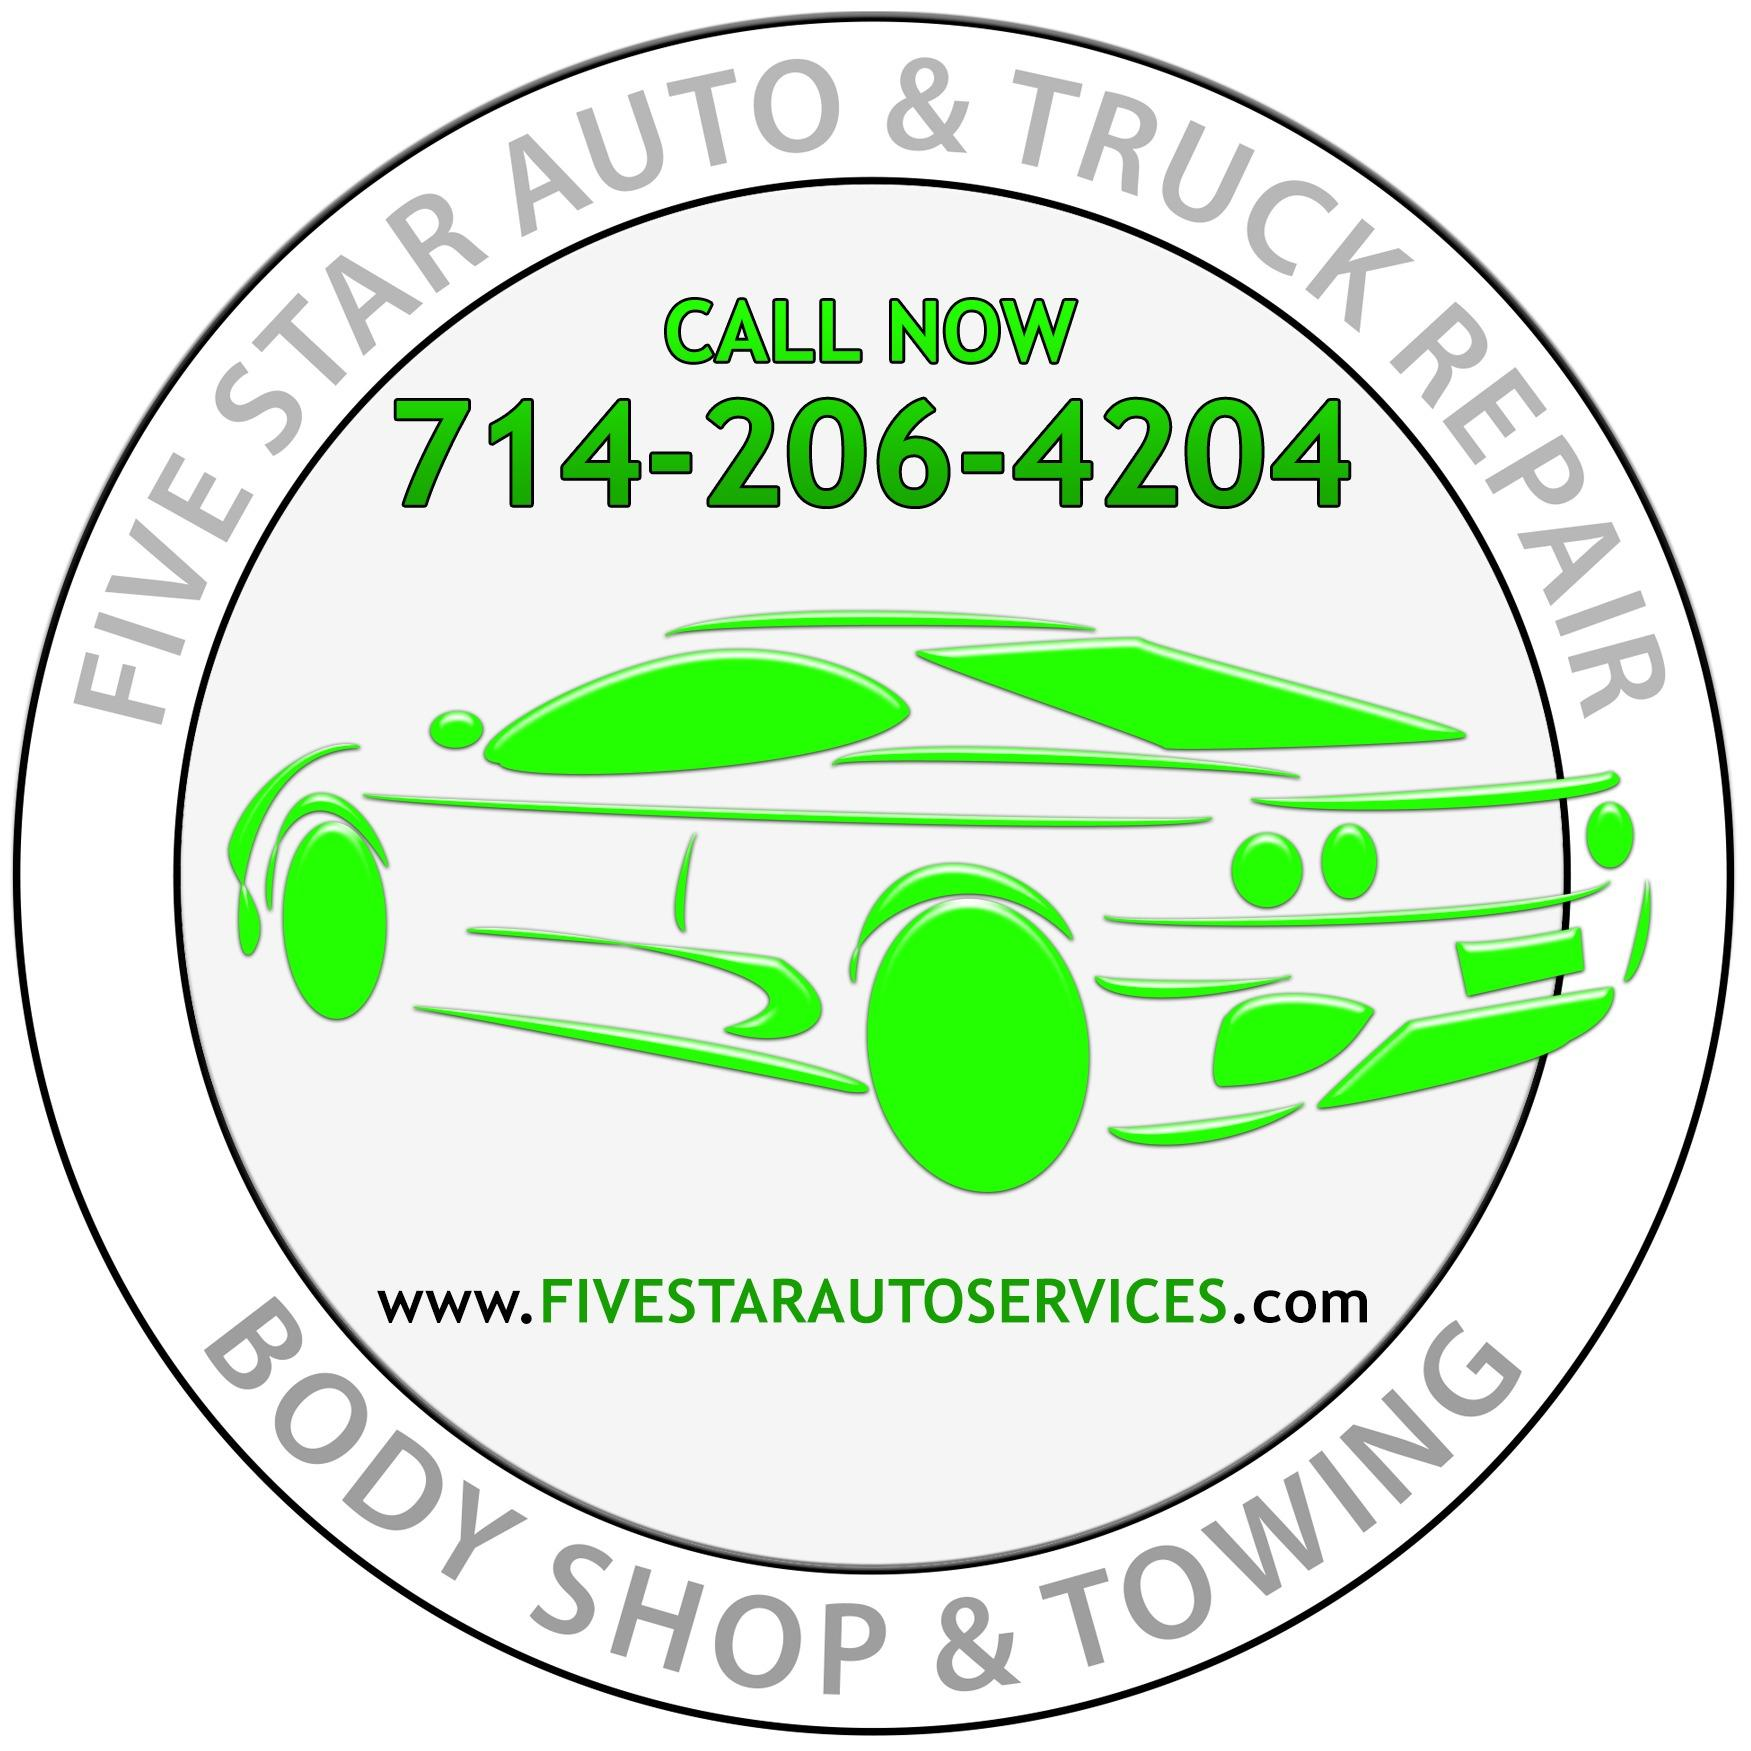 Five Star Auto & Truck Repair image 10